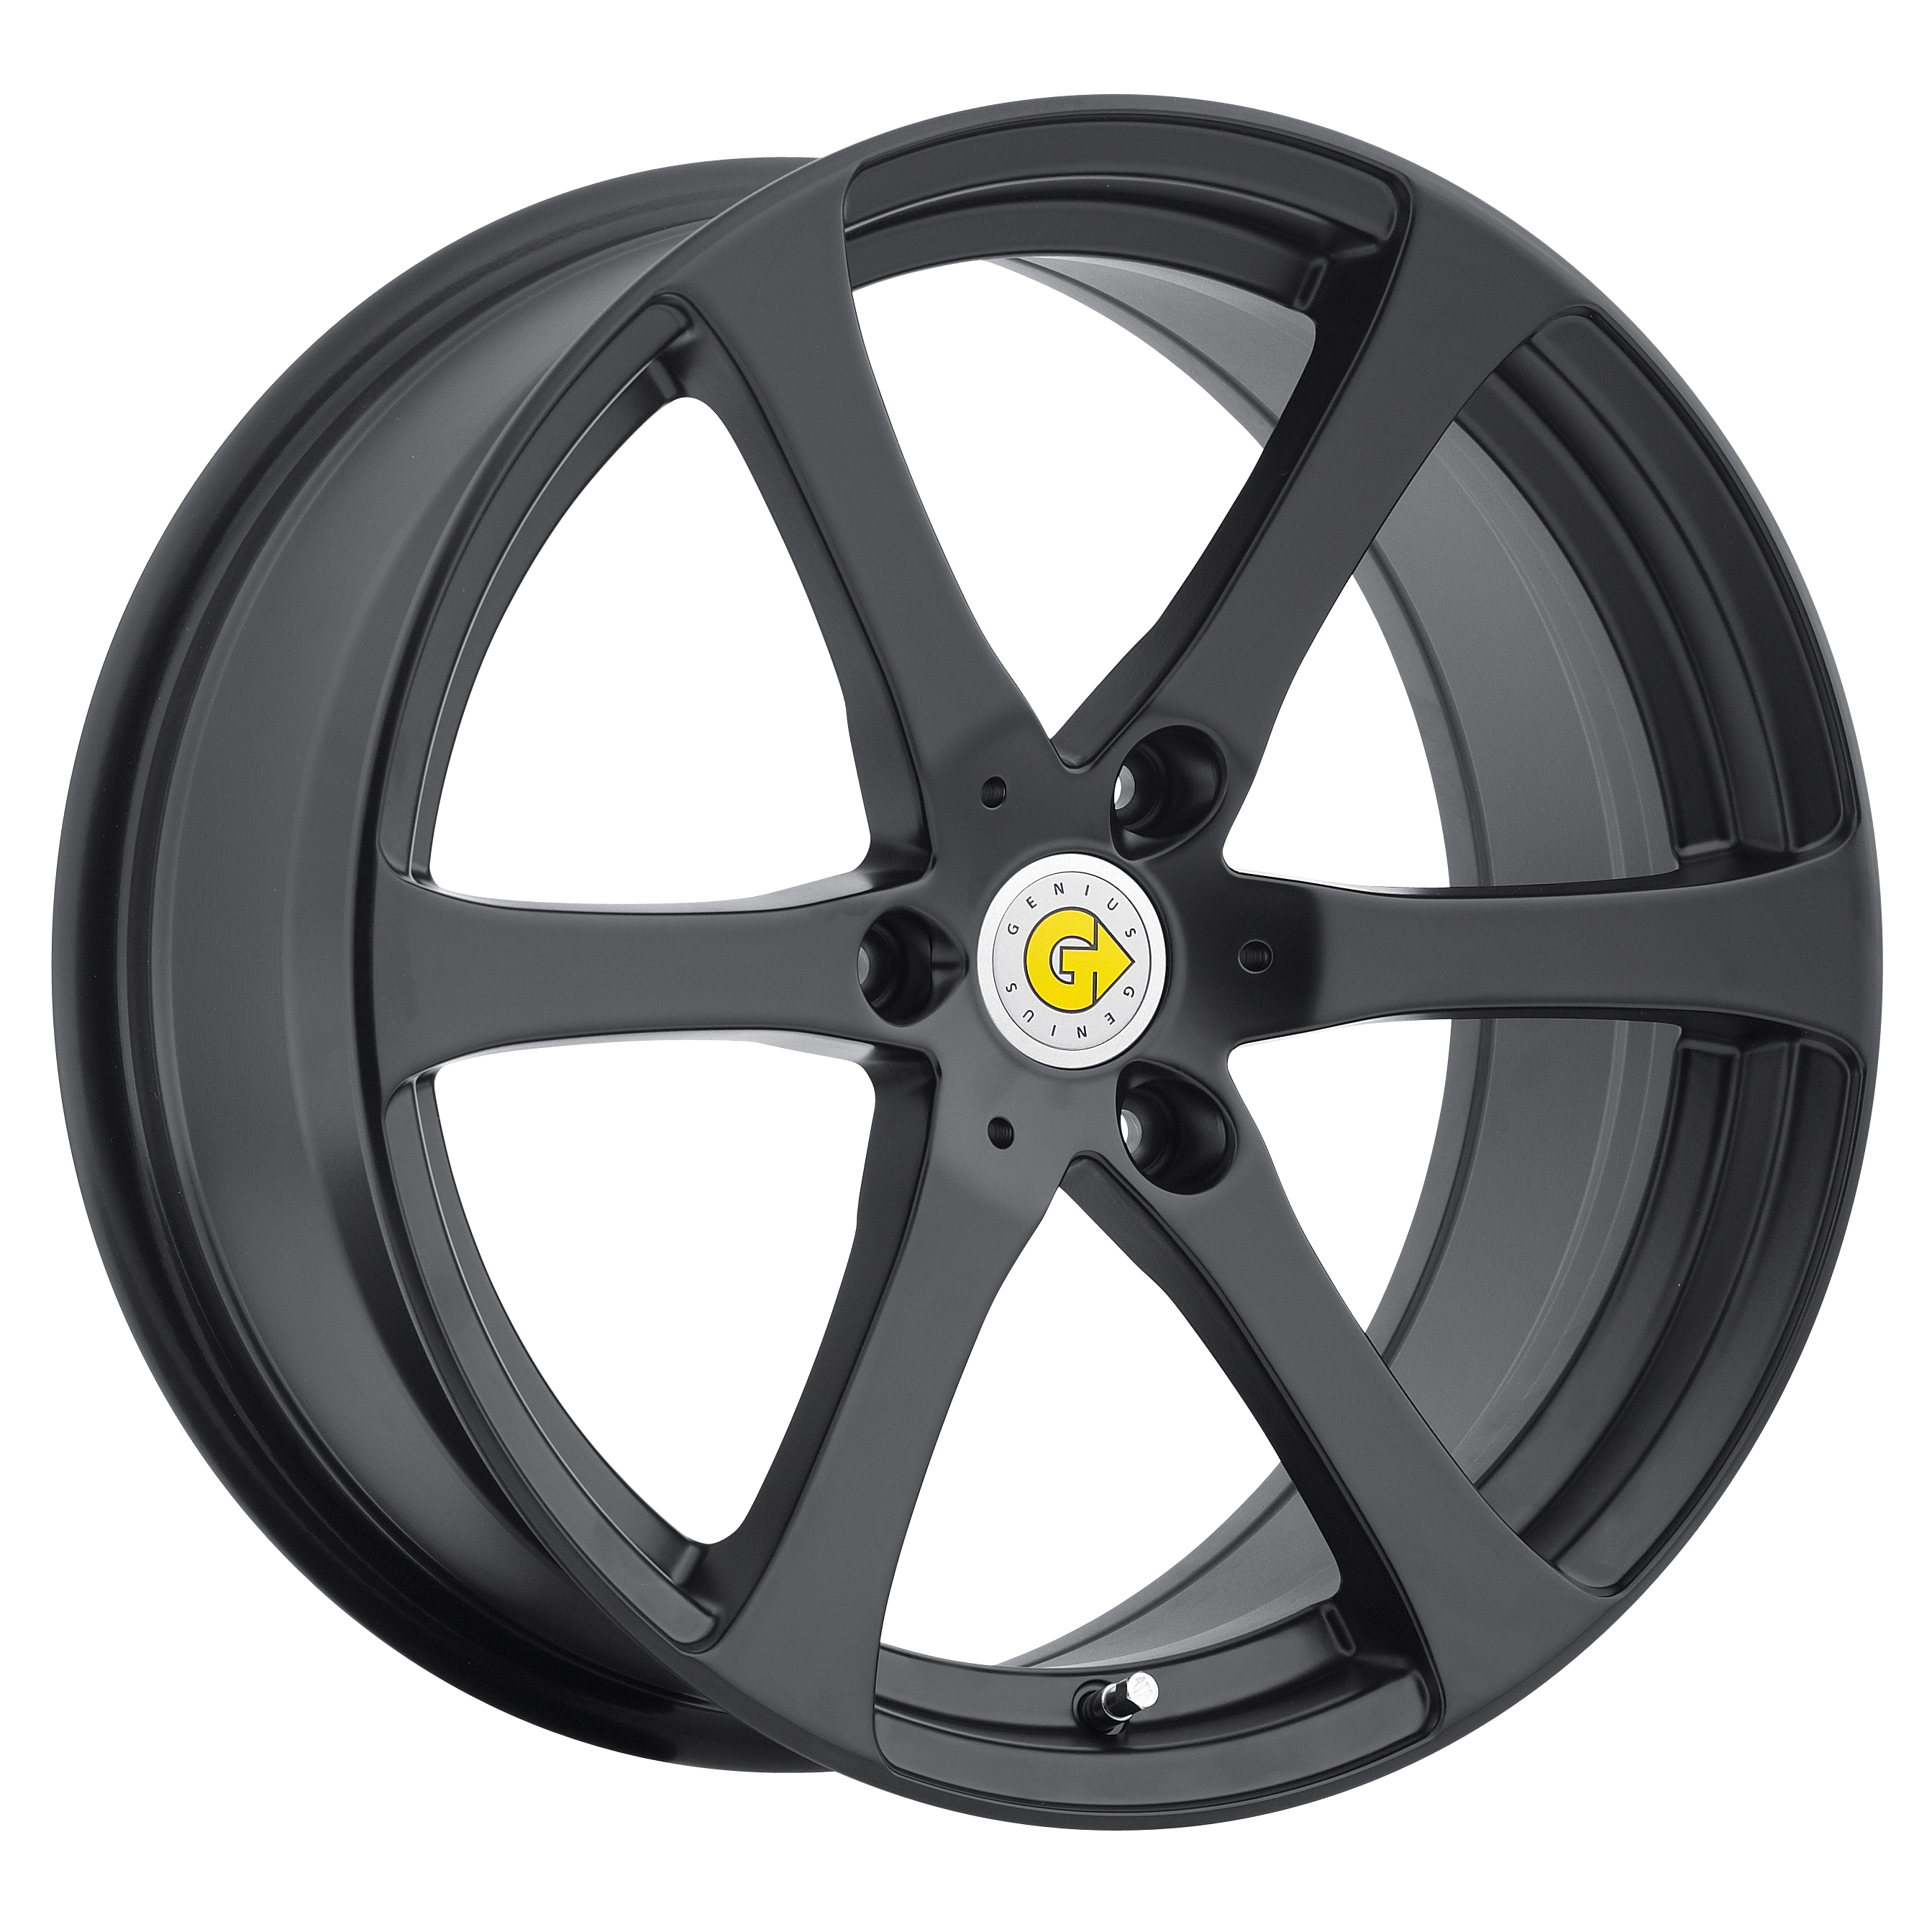 smart wheels rims wheel dimensions newton genius darwin matte models custom lug rear adds customizing